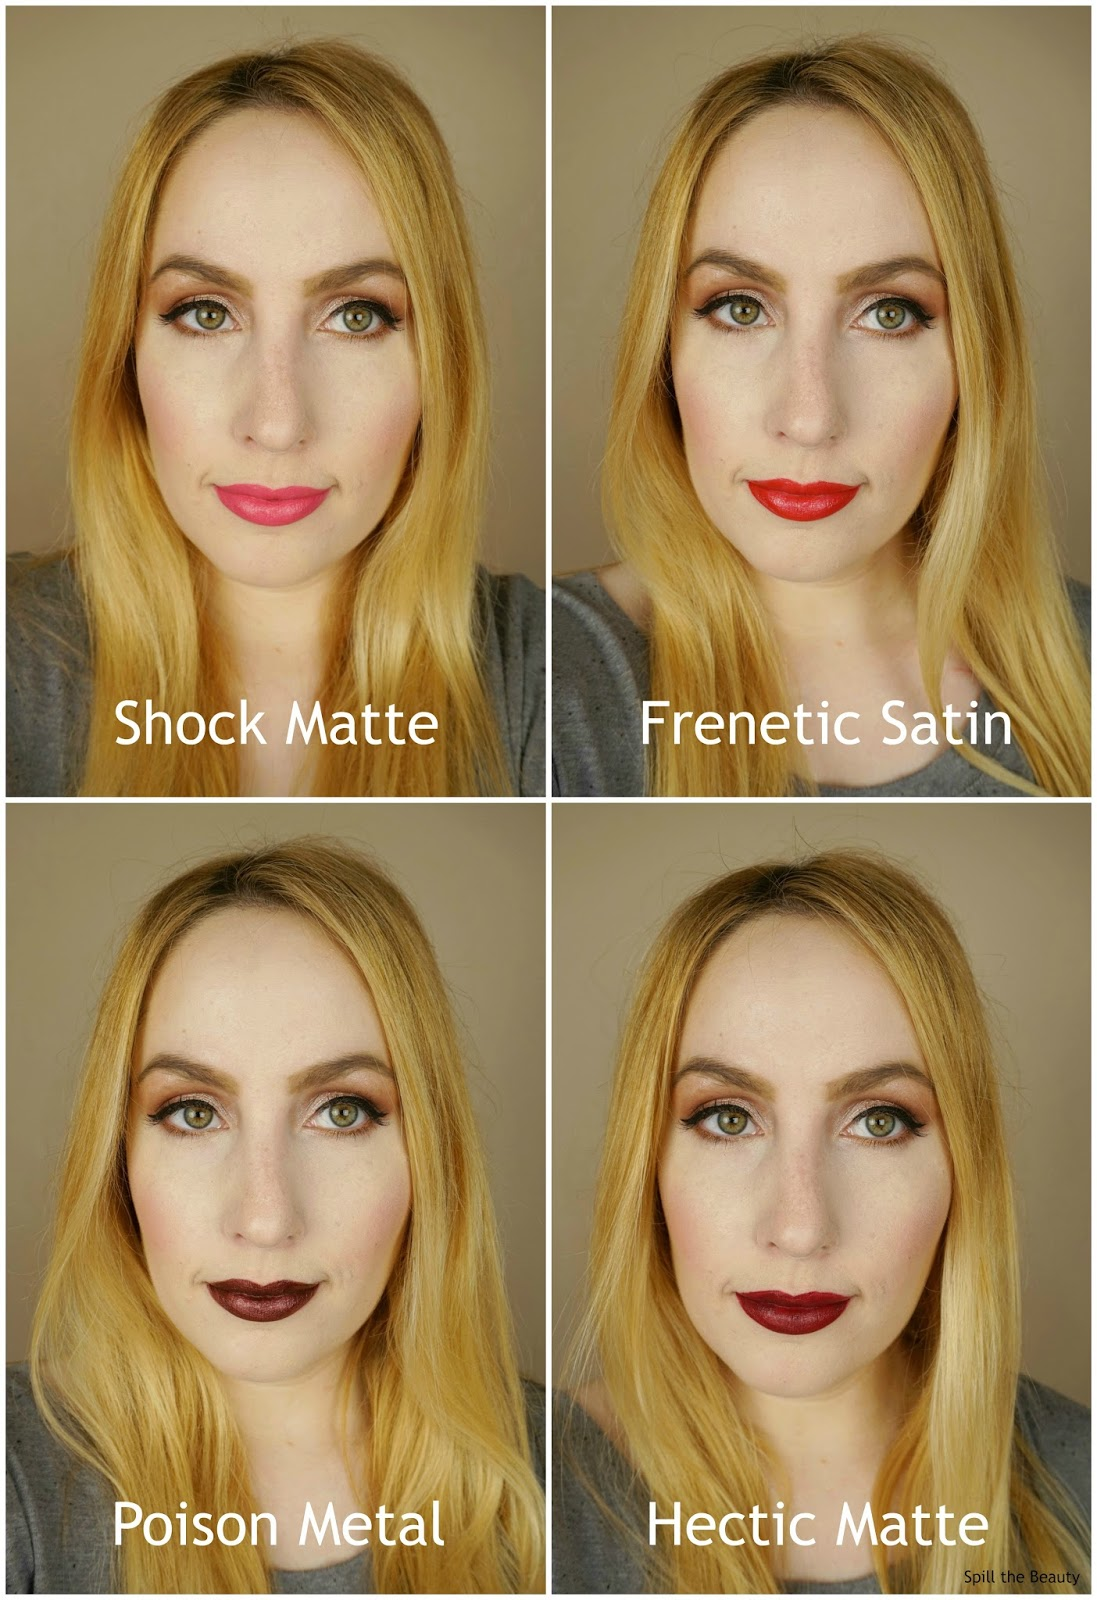 dior rouge dior liquid lipstick frenetic matte poison metal hectic matte shock matte swatches review